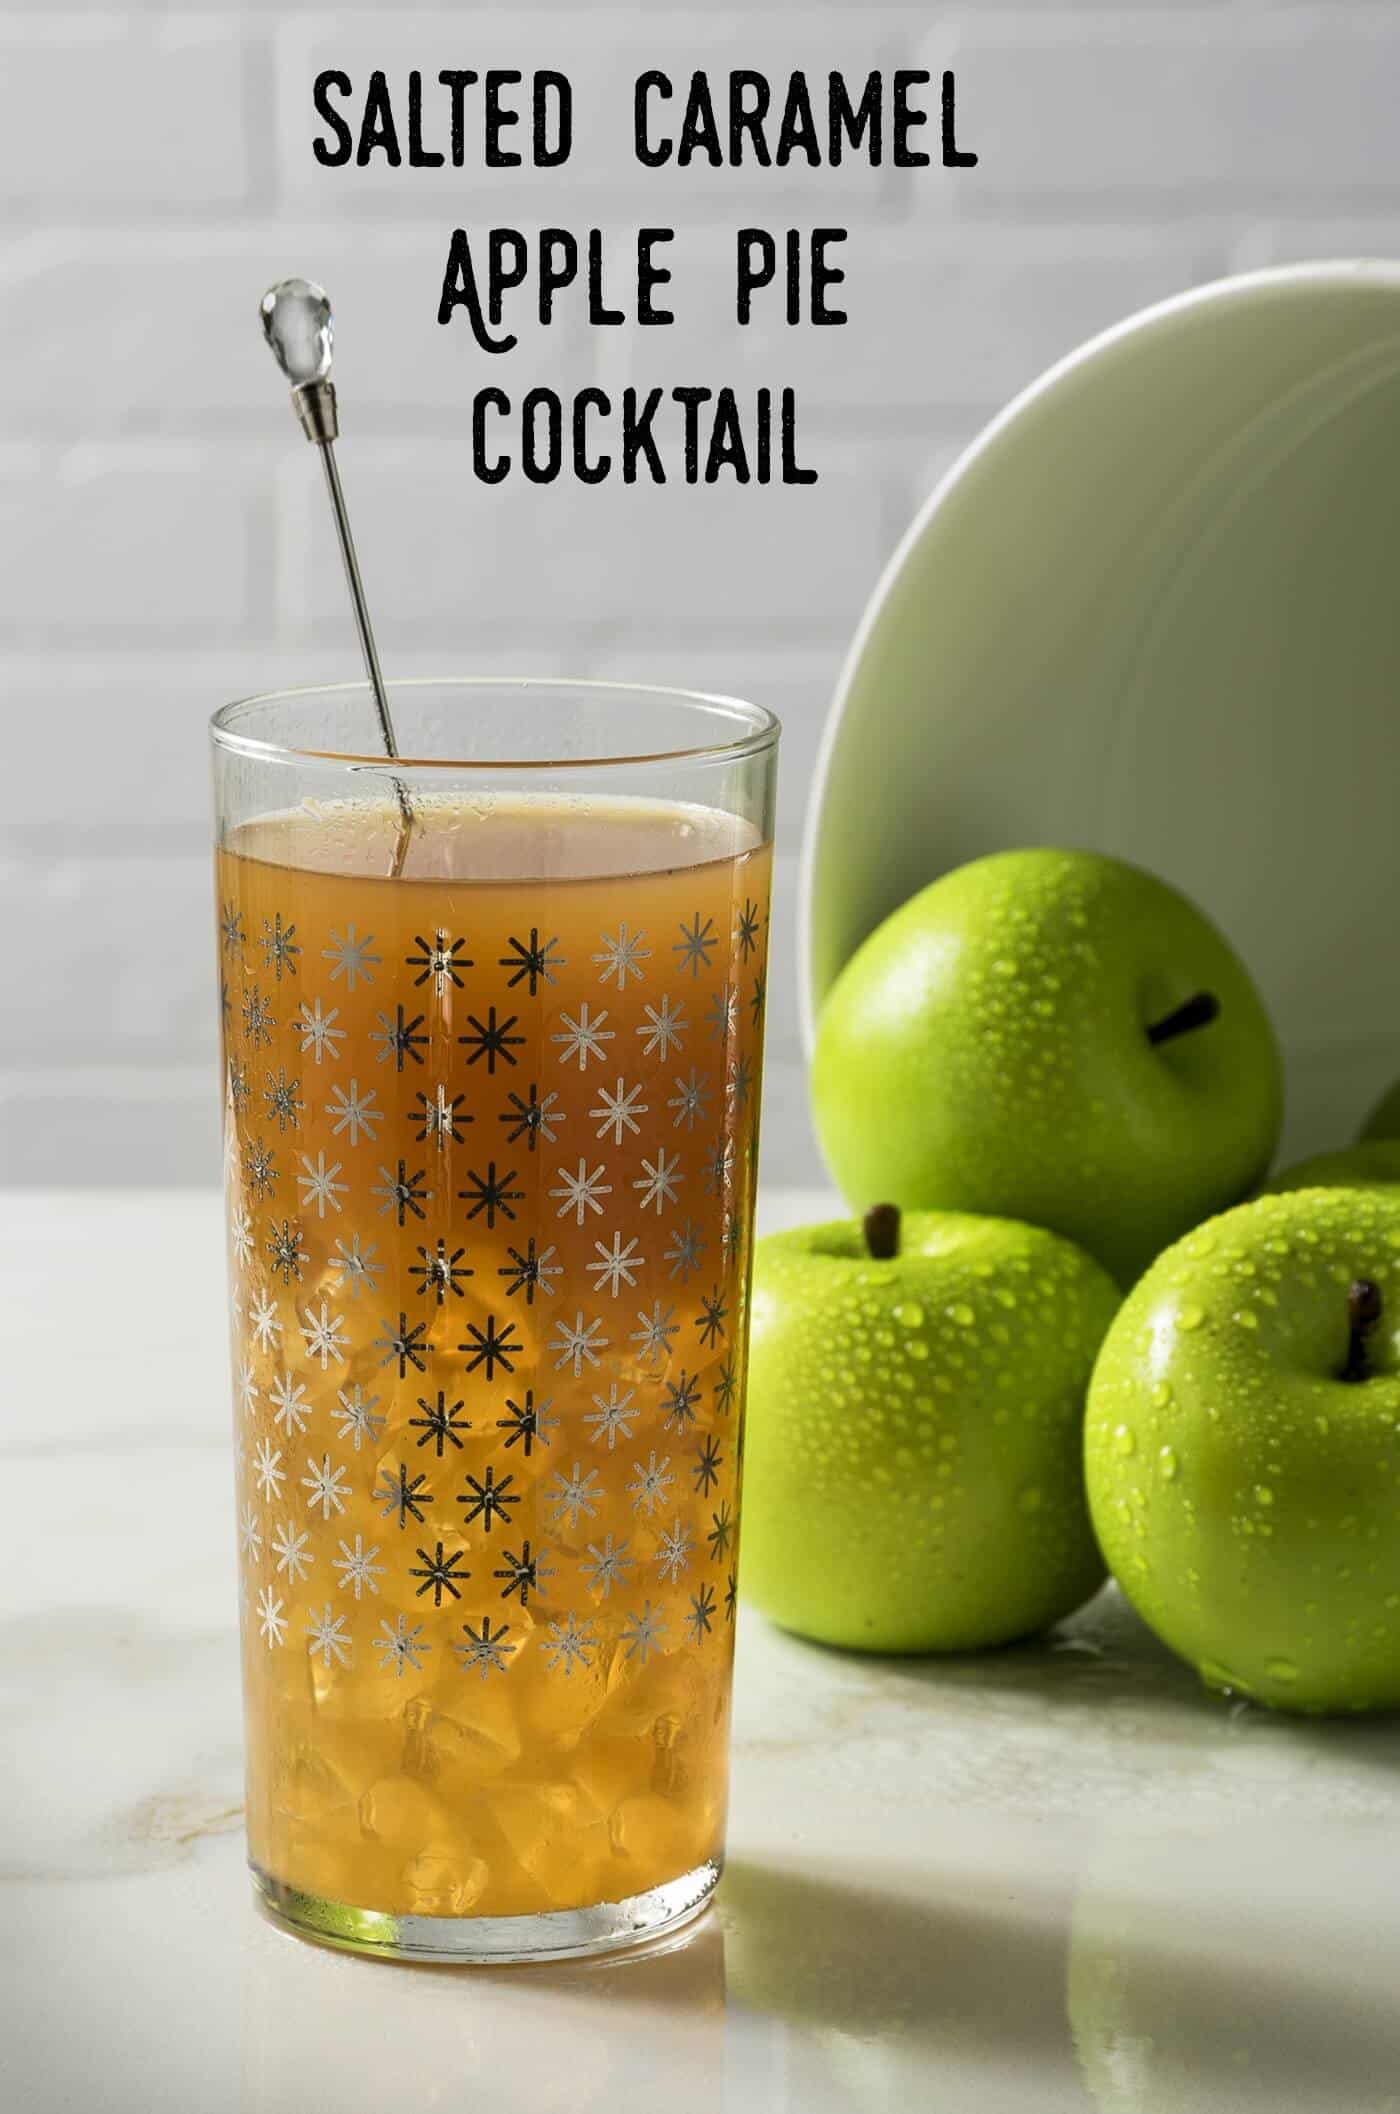 Salted Caramel Apple Pie Cocktail for Fall